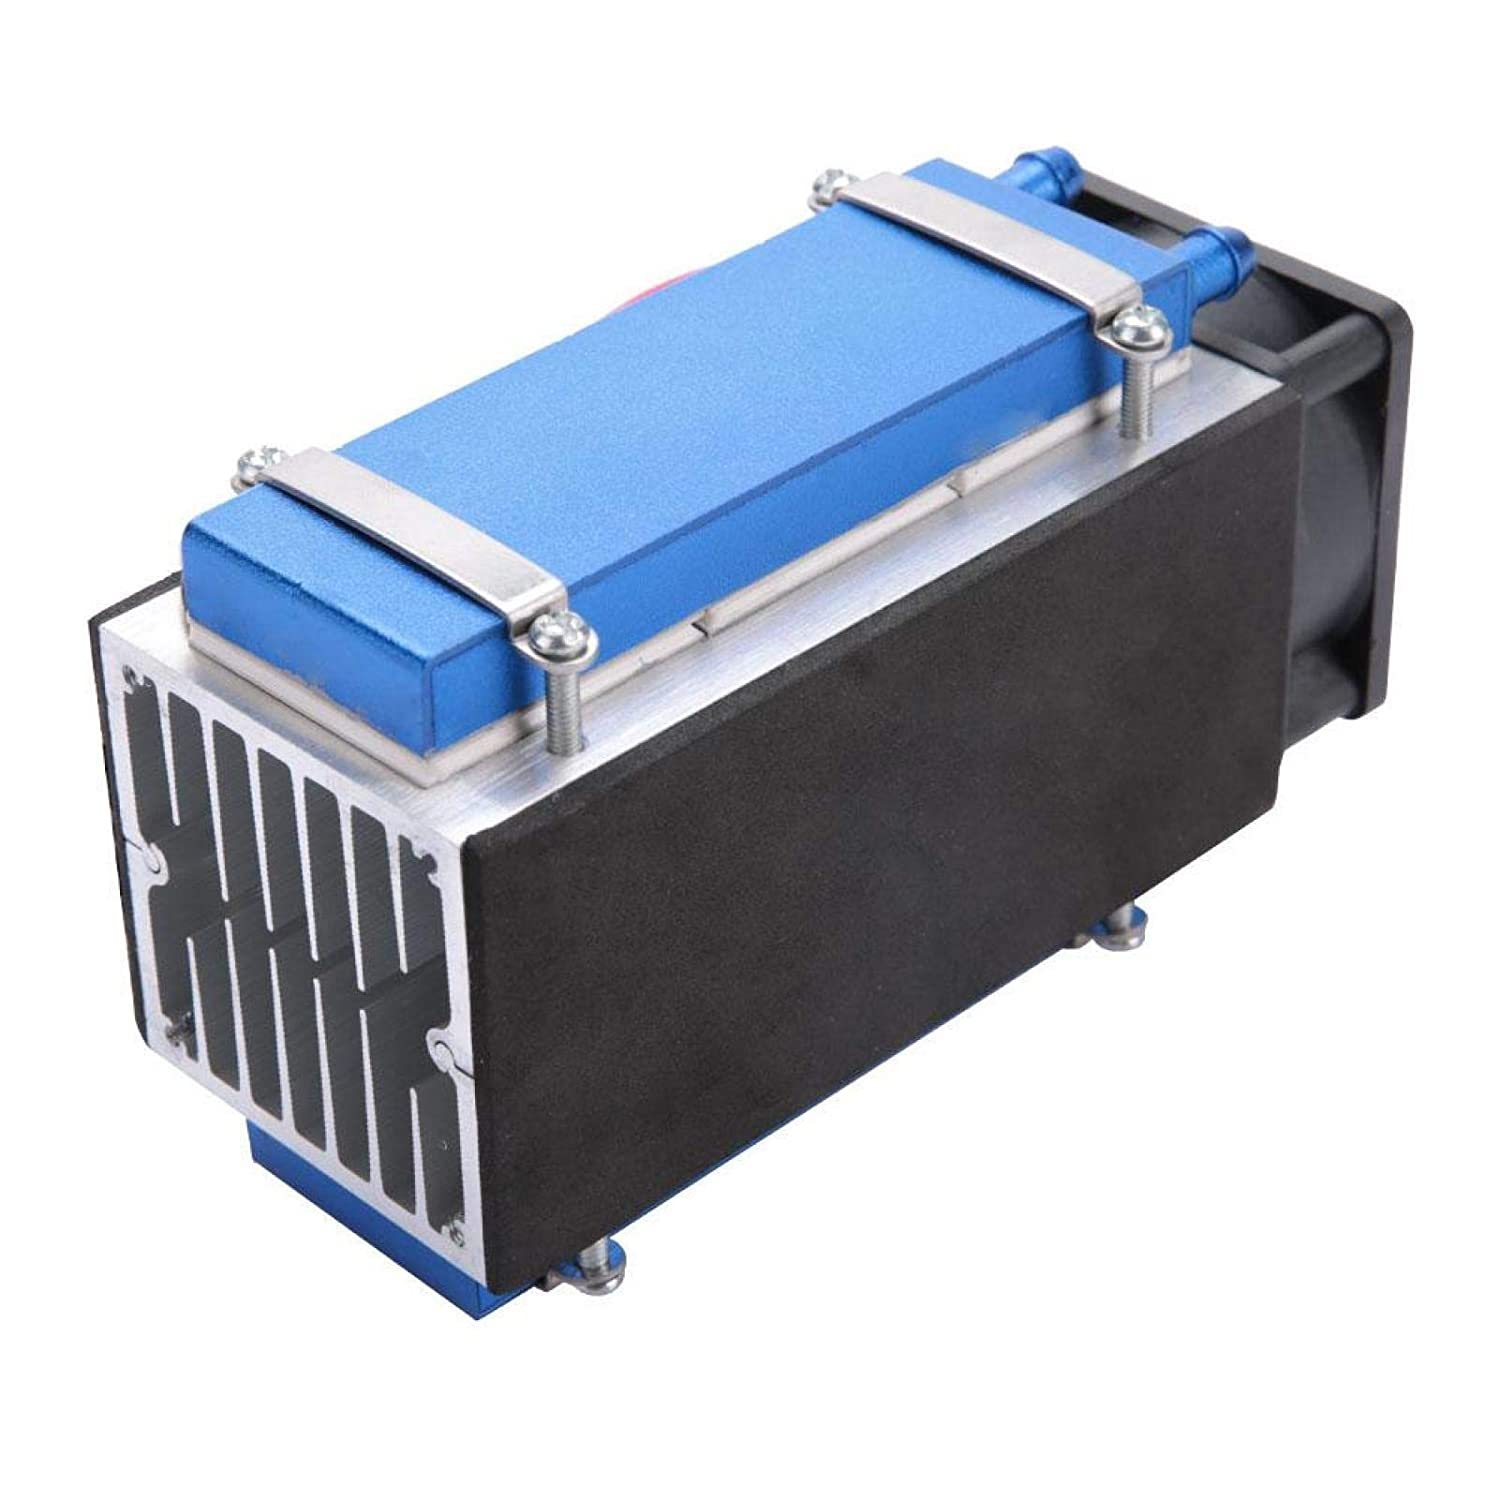 12V Denver Mall Max 63% OFF 420W 6-Chip Adjustable Cooling Thermoelectric C Capacity Air